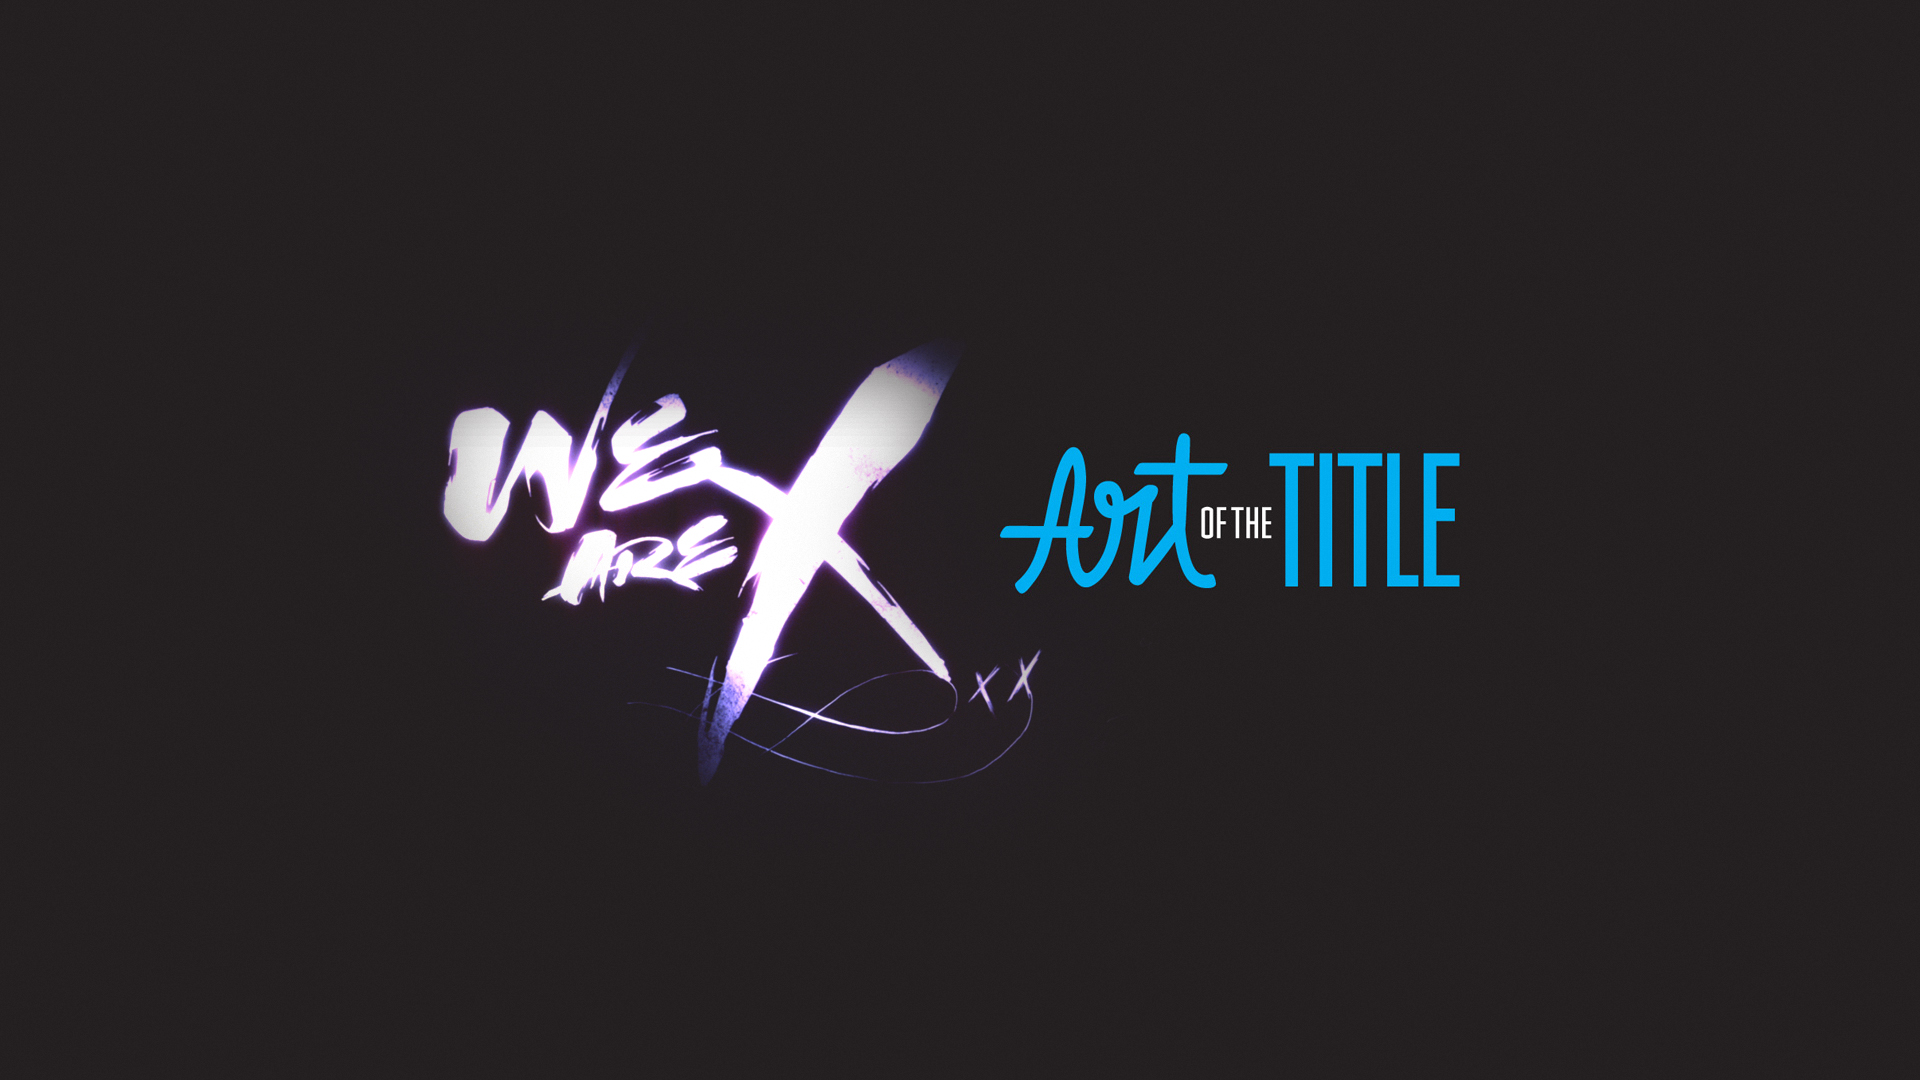 We-are-X-art-of-title-frame1